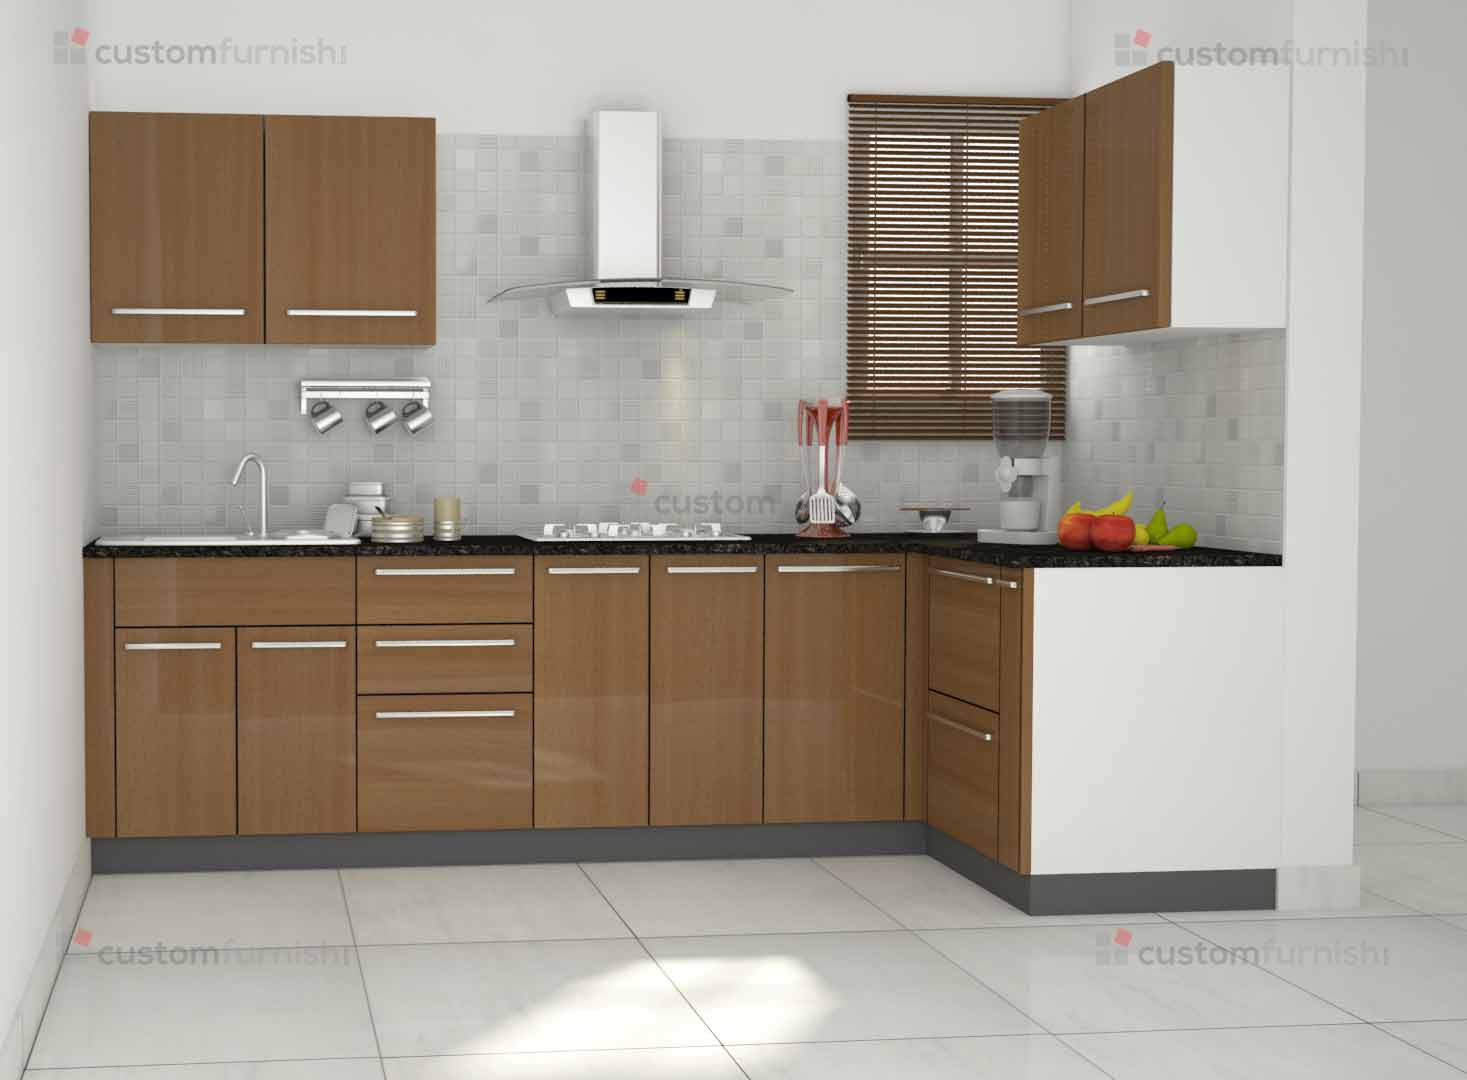 Modular kitchen design l shape crowdbuild for for Kitchen designs modular